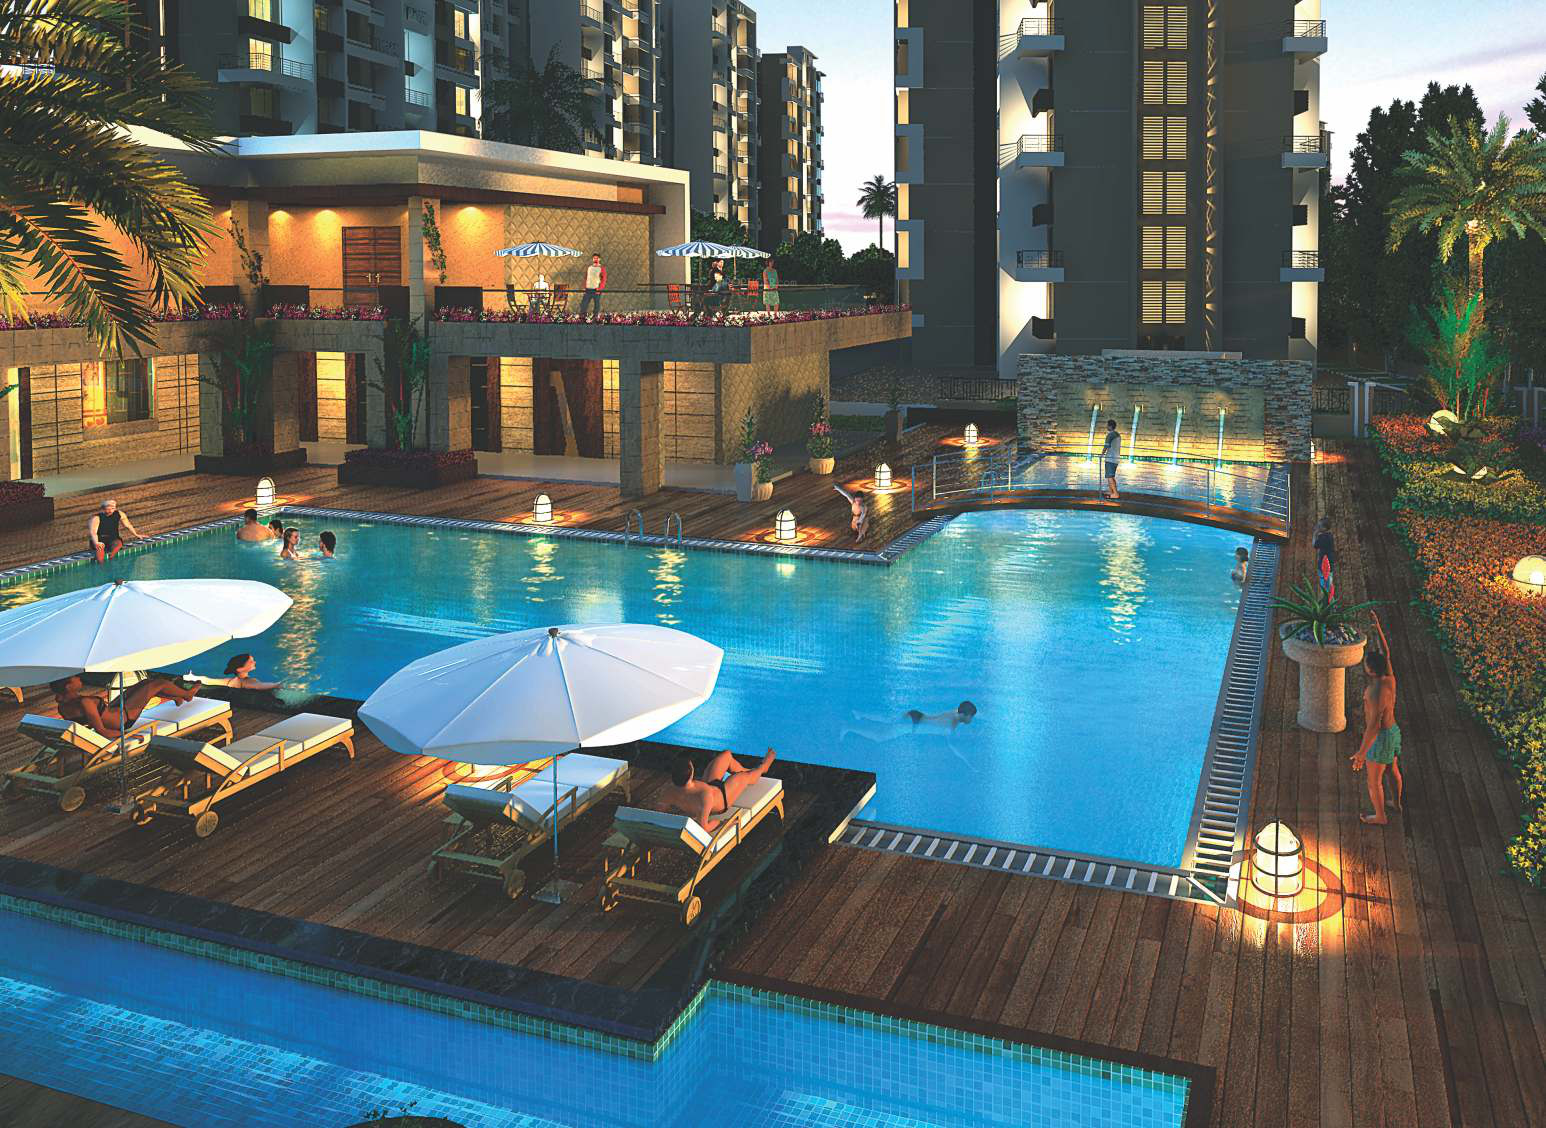 Regency sarvam in titwala mumbai price location map - Titwala farmhouse with swimming pool ...